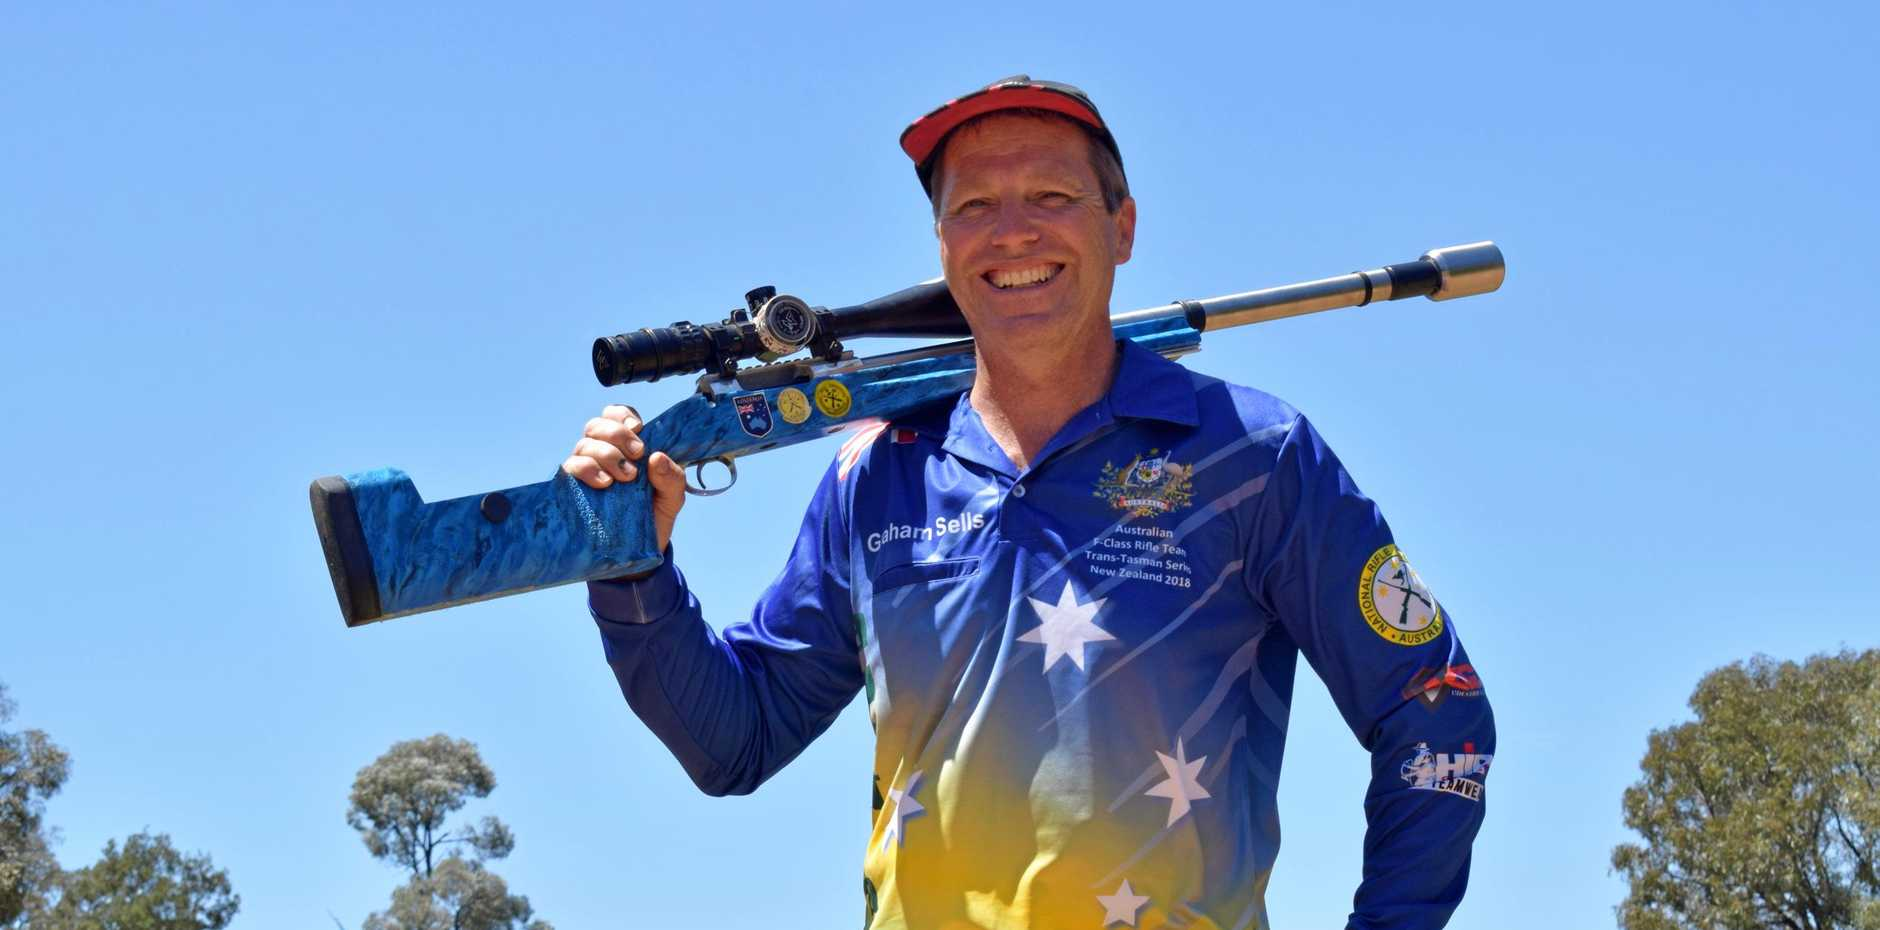 PERSEVERANCE: Chinchilla shooter Graham Sells will compete in the Queensland F Open rifle team in September at Pinjar, Western Australia.